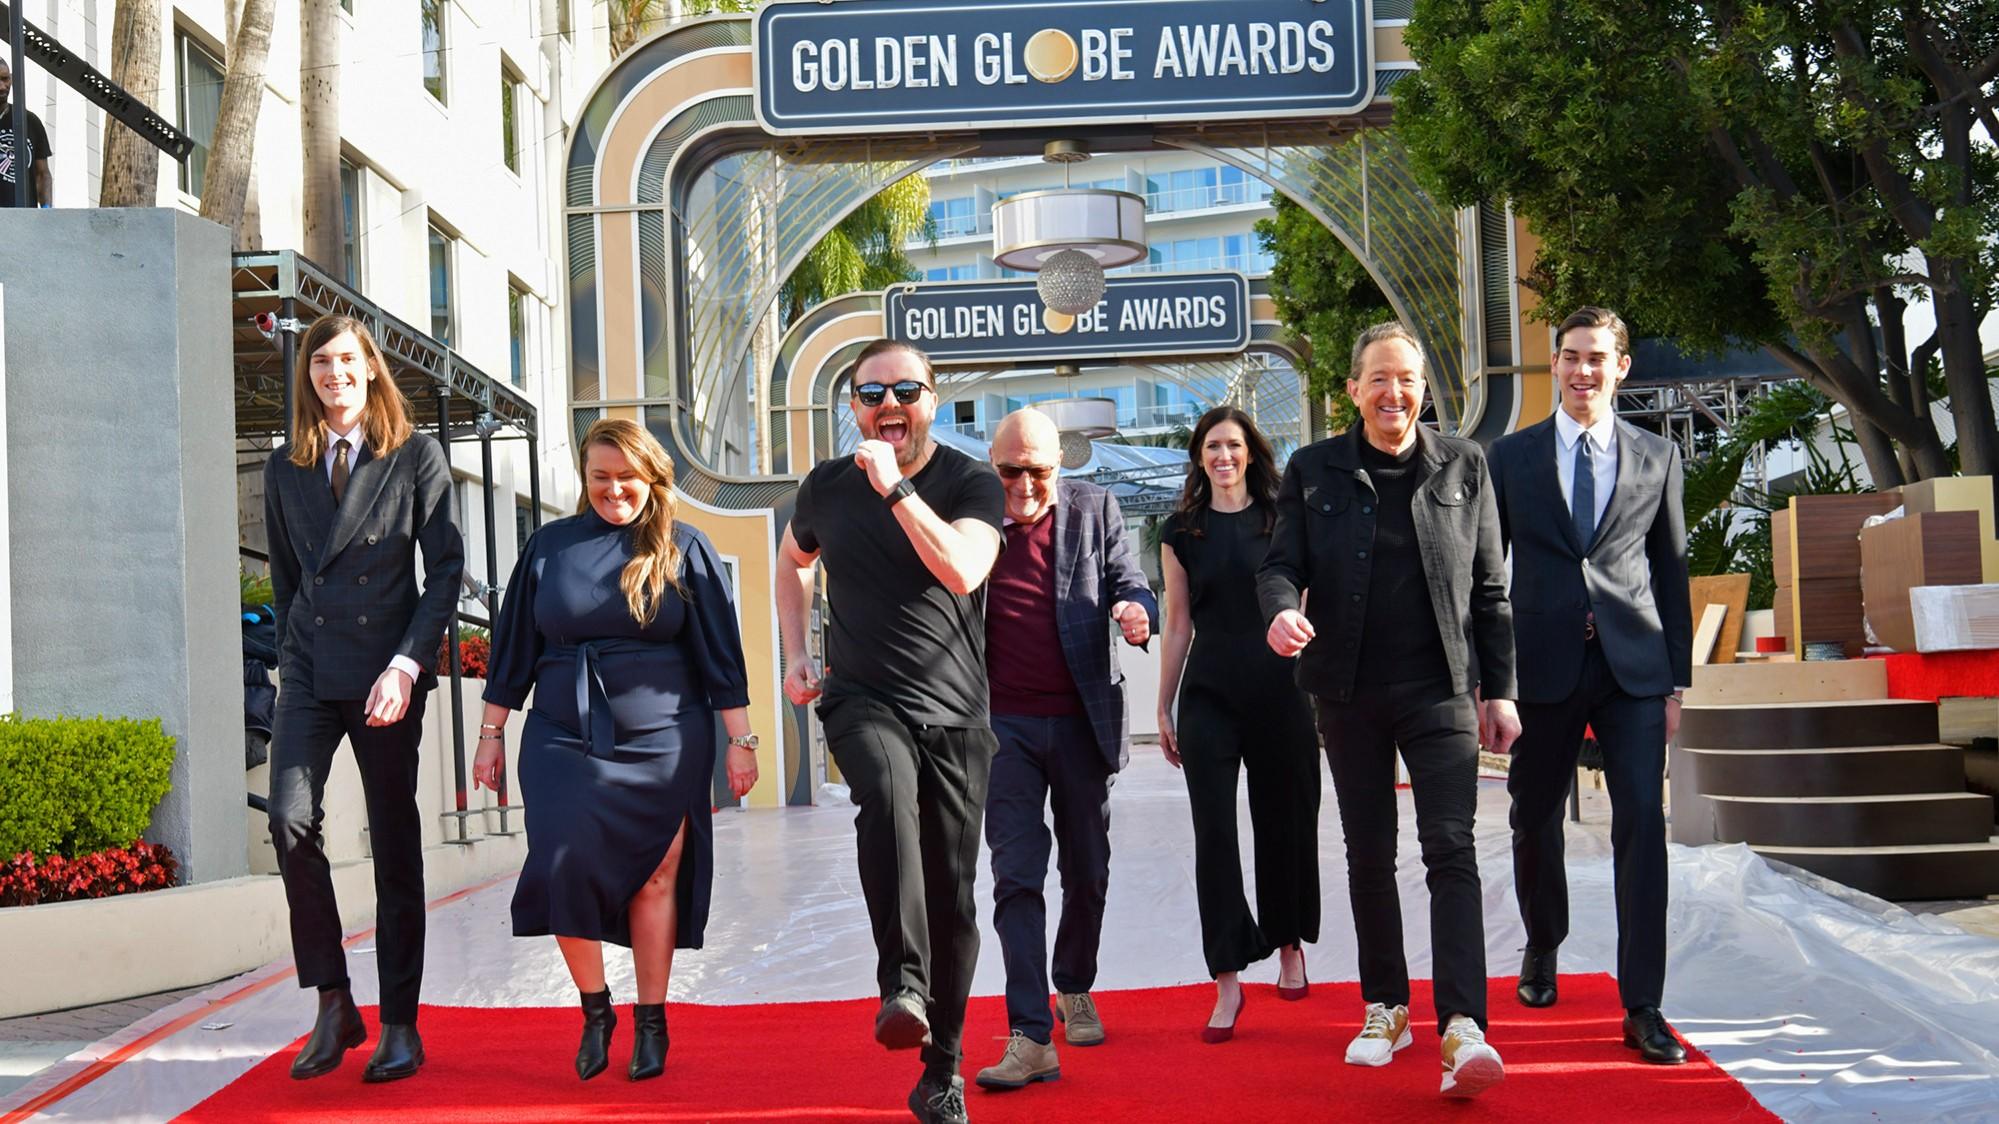 How to watch Golden Globes online live stream for free from